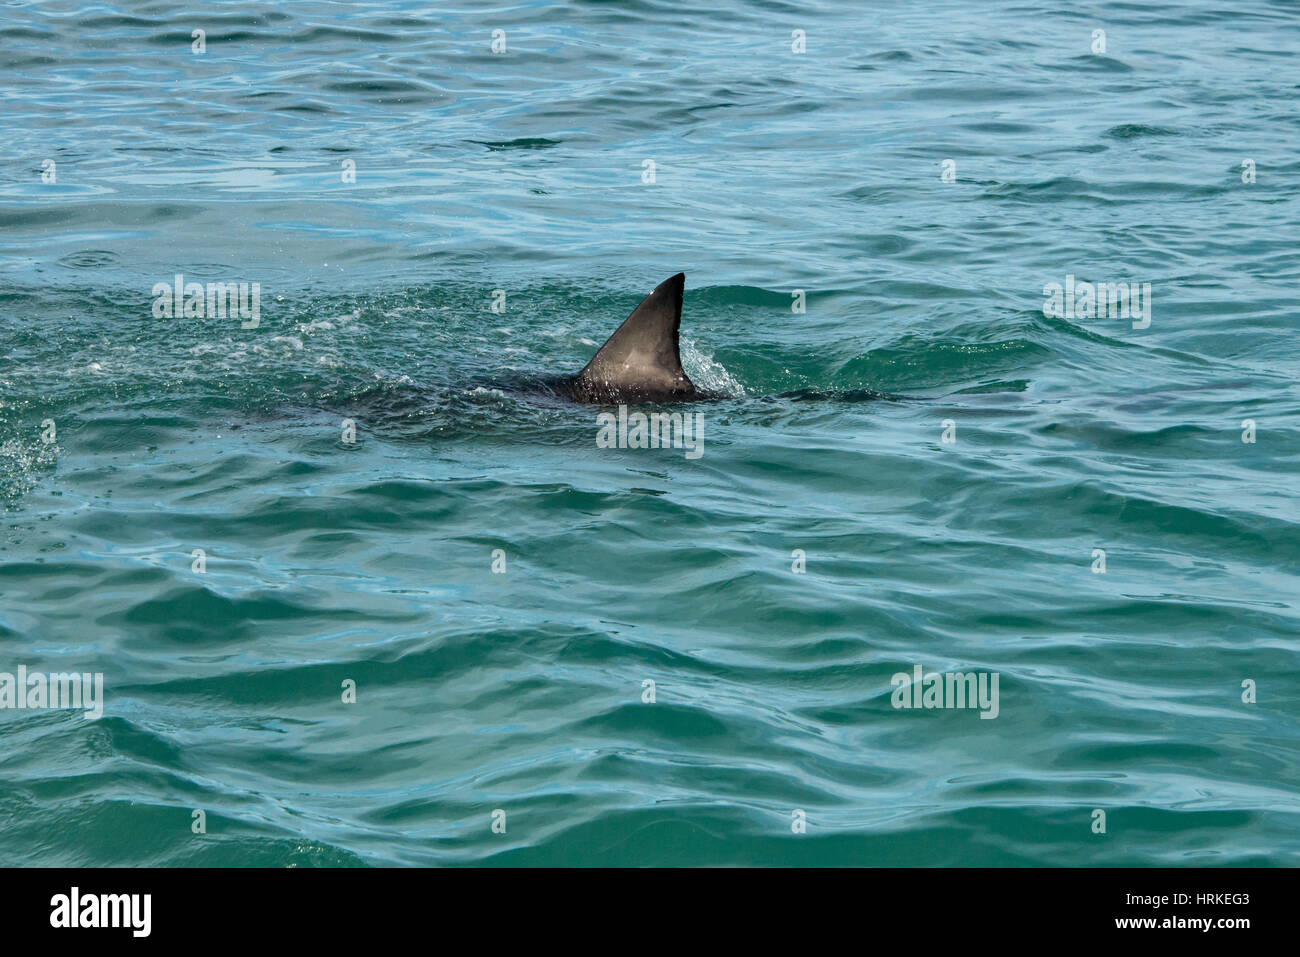 A great white shark's fin showing above the water Stock